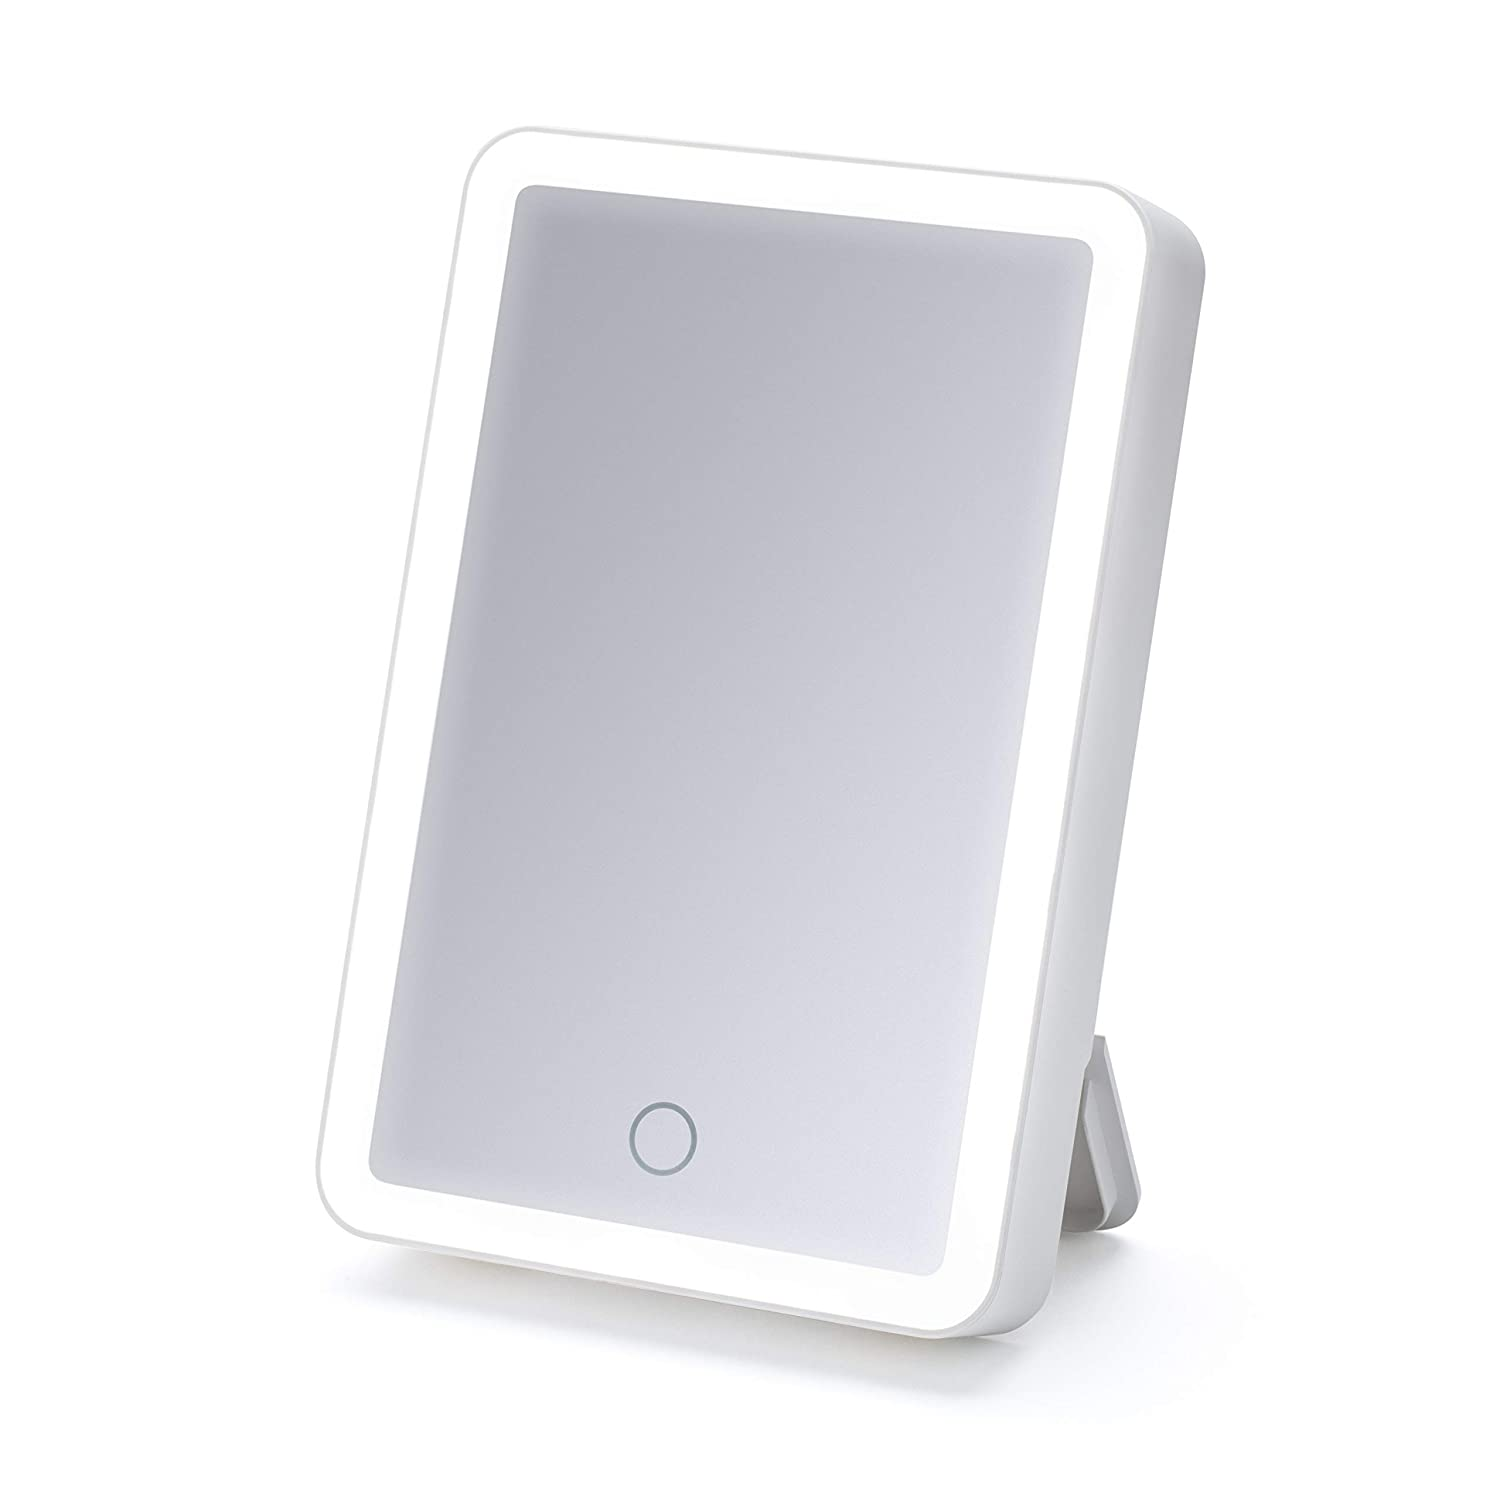 "iHome Portable 6"" X 8"" Lighted LED Vanity Mirror, Portable Makeup Mirror, with Bluetooth Audio, Speakerphone, Built in Battery for Travel Or On The Go! iCVBT1 (White)"